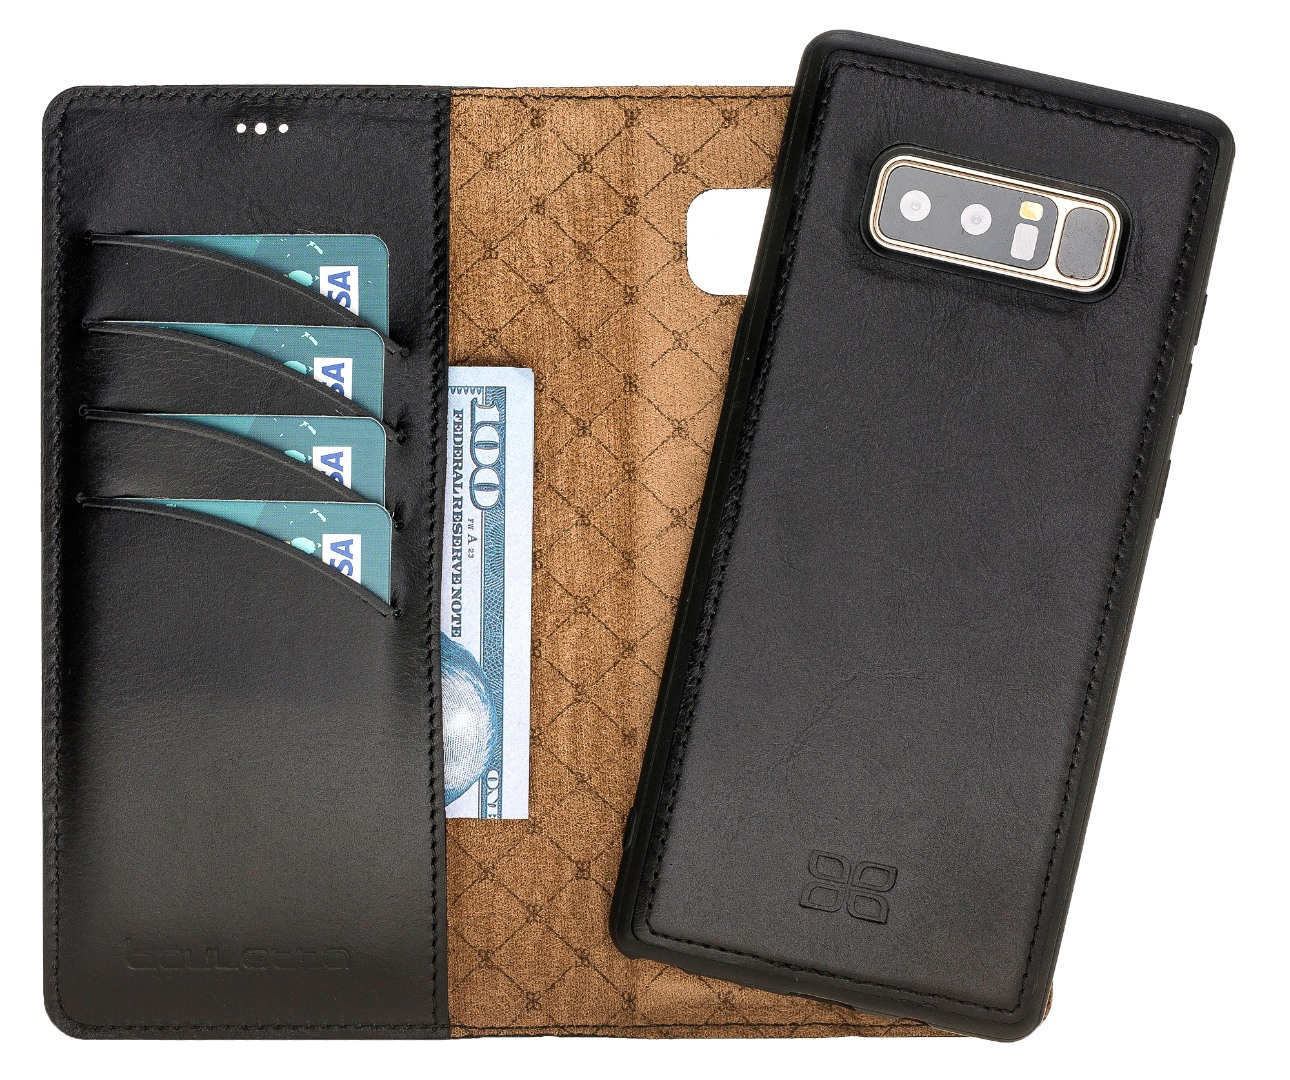 Husa piele naturala 2 in 1, tip portofel + back cover, Samsung Galaxy Note 8 - Bouletta Magic Wallet, Rustic black